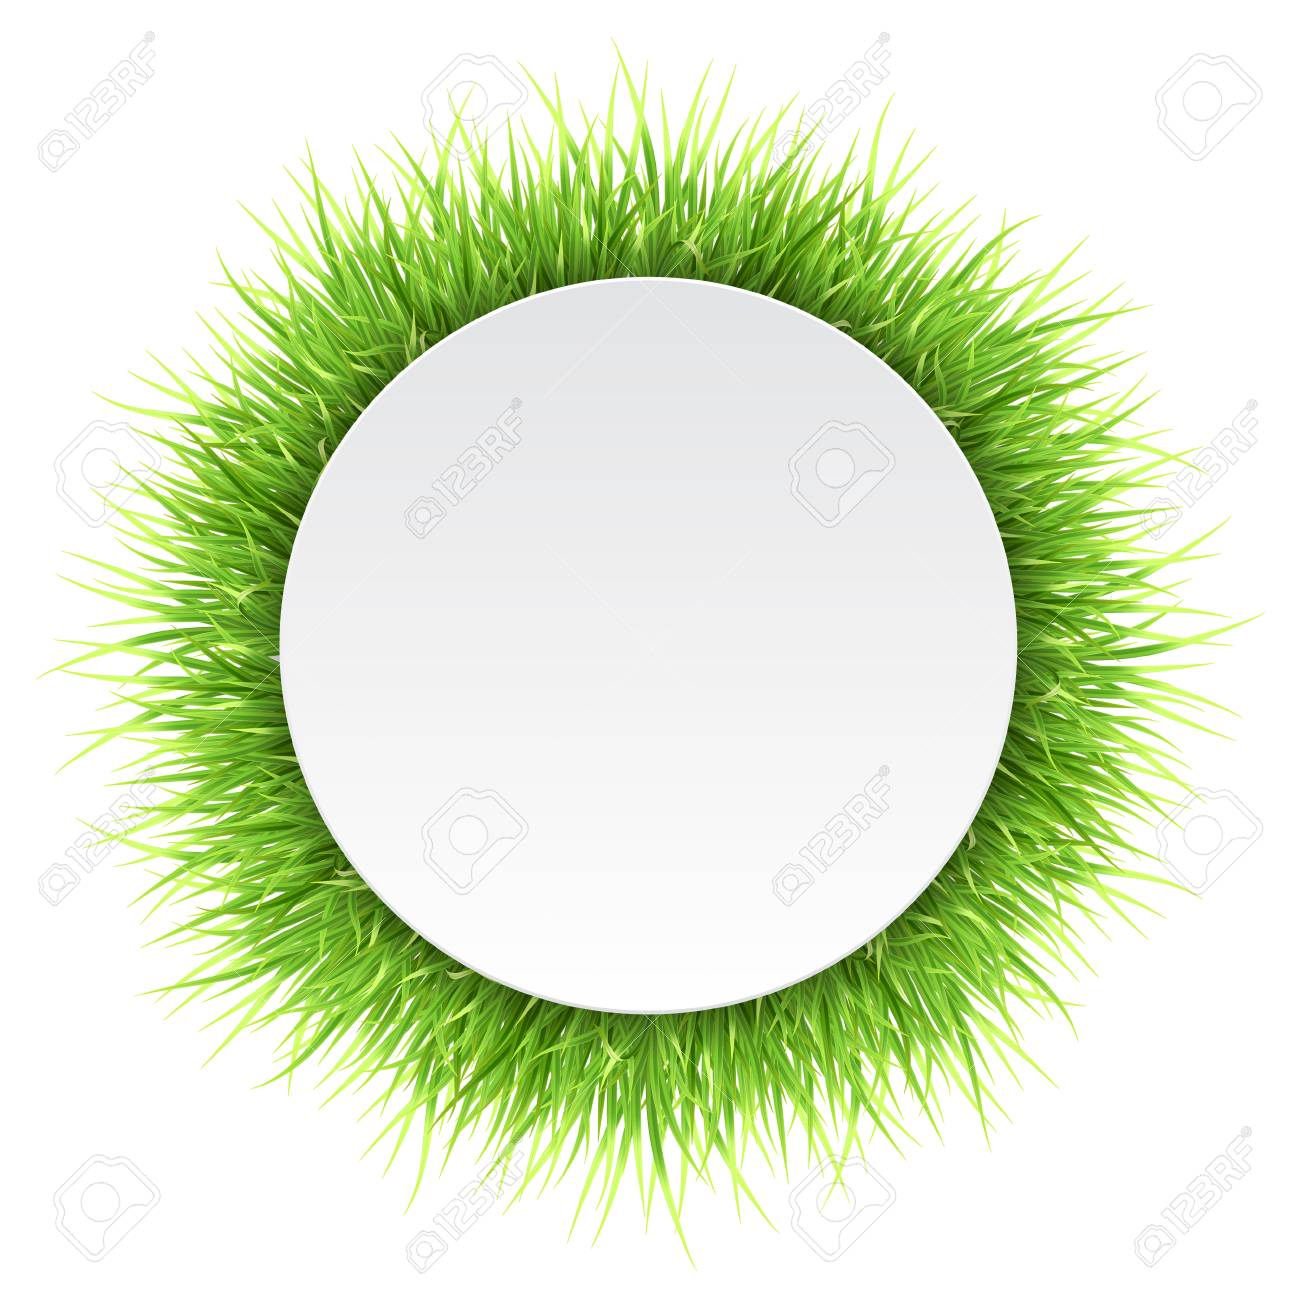 Circle Label With Green Grass Detailed Vector Natural Frame